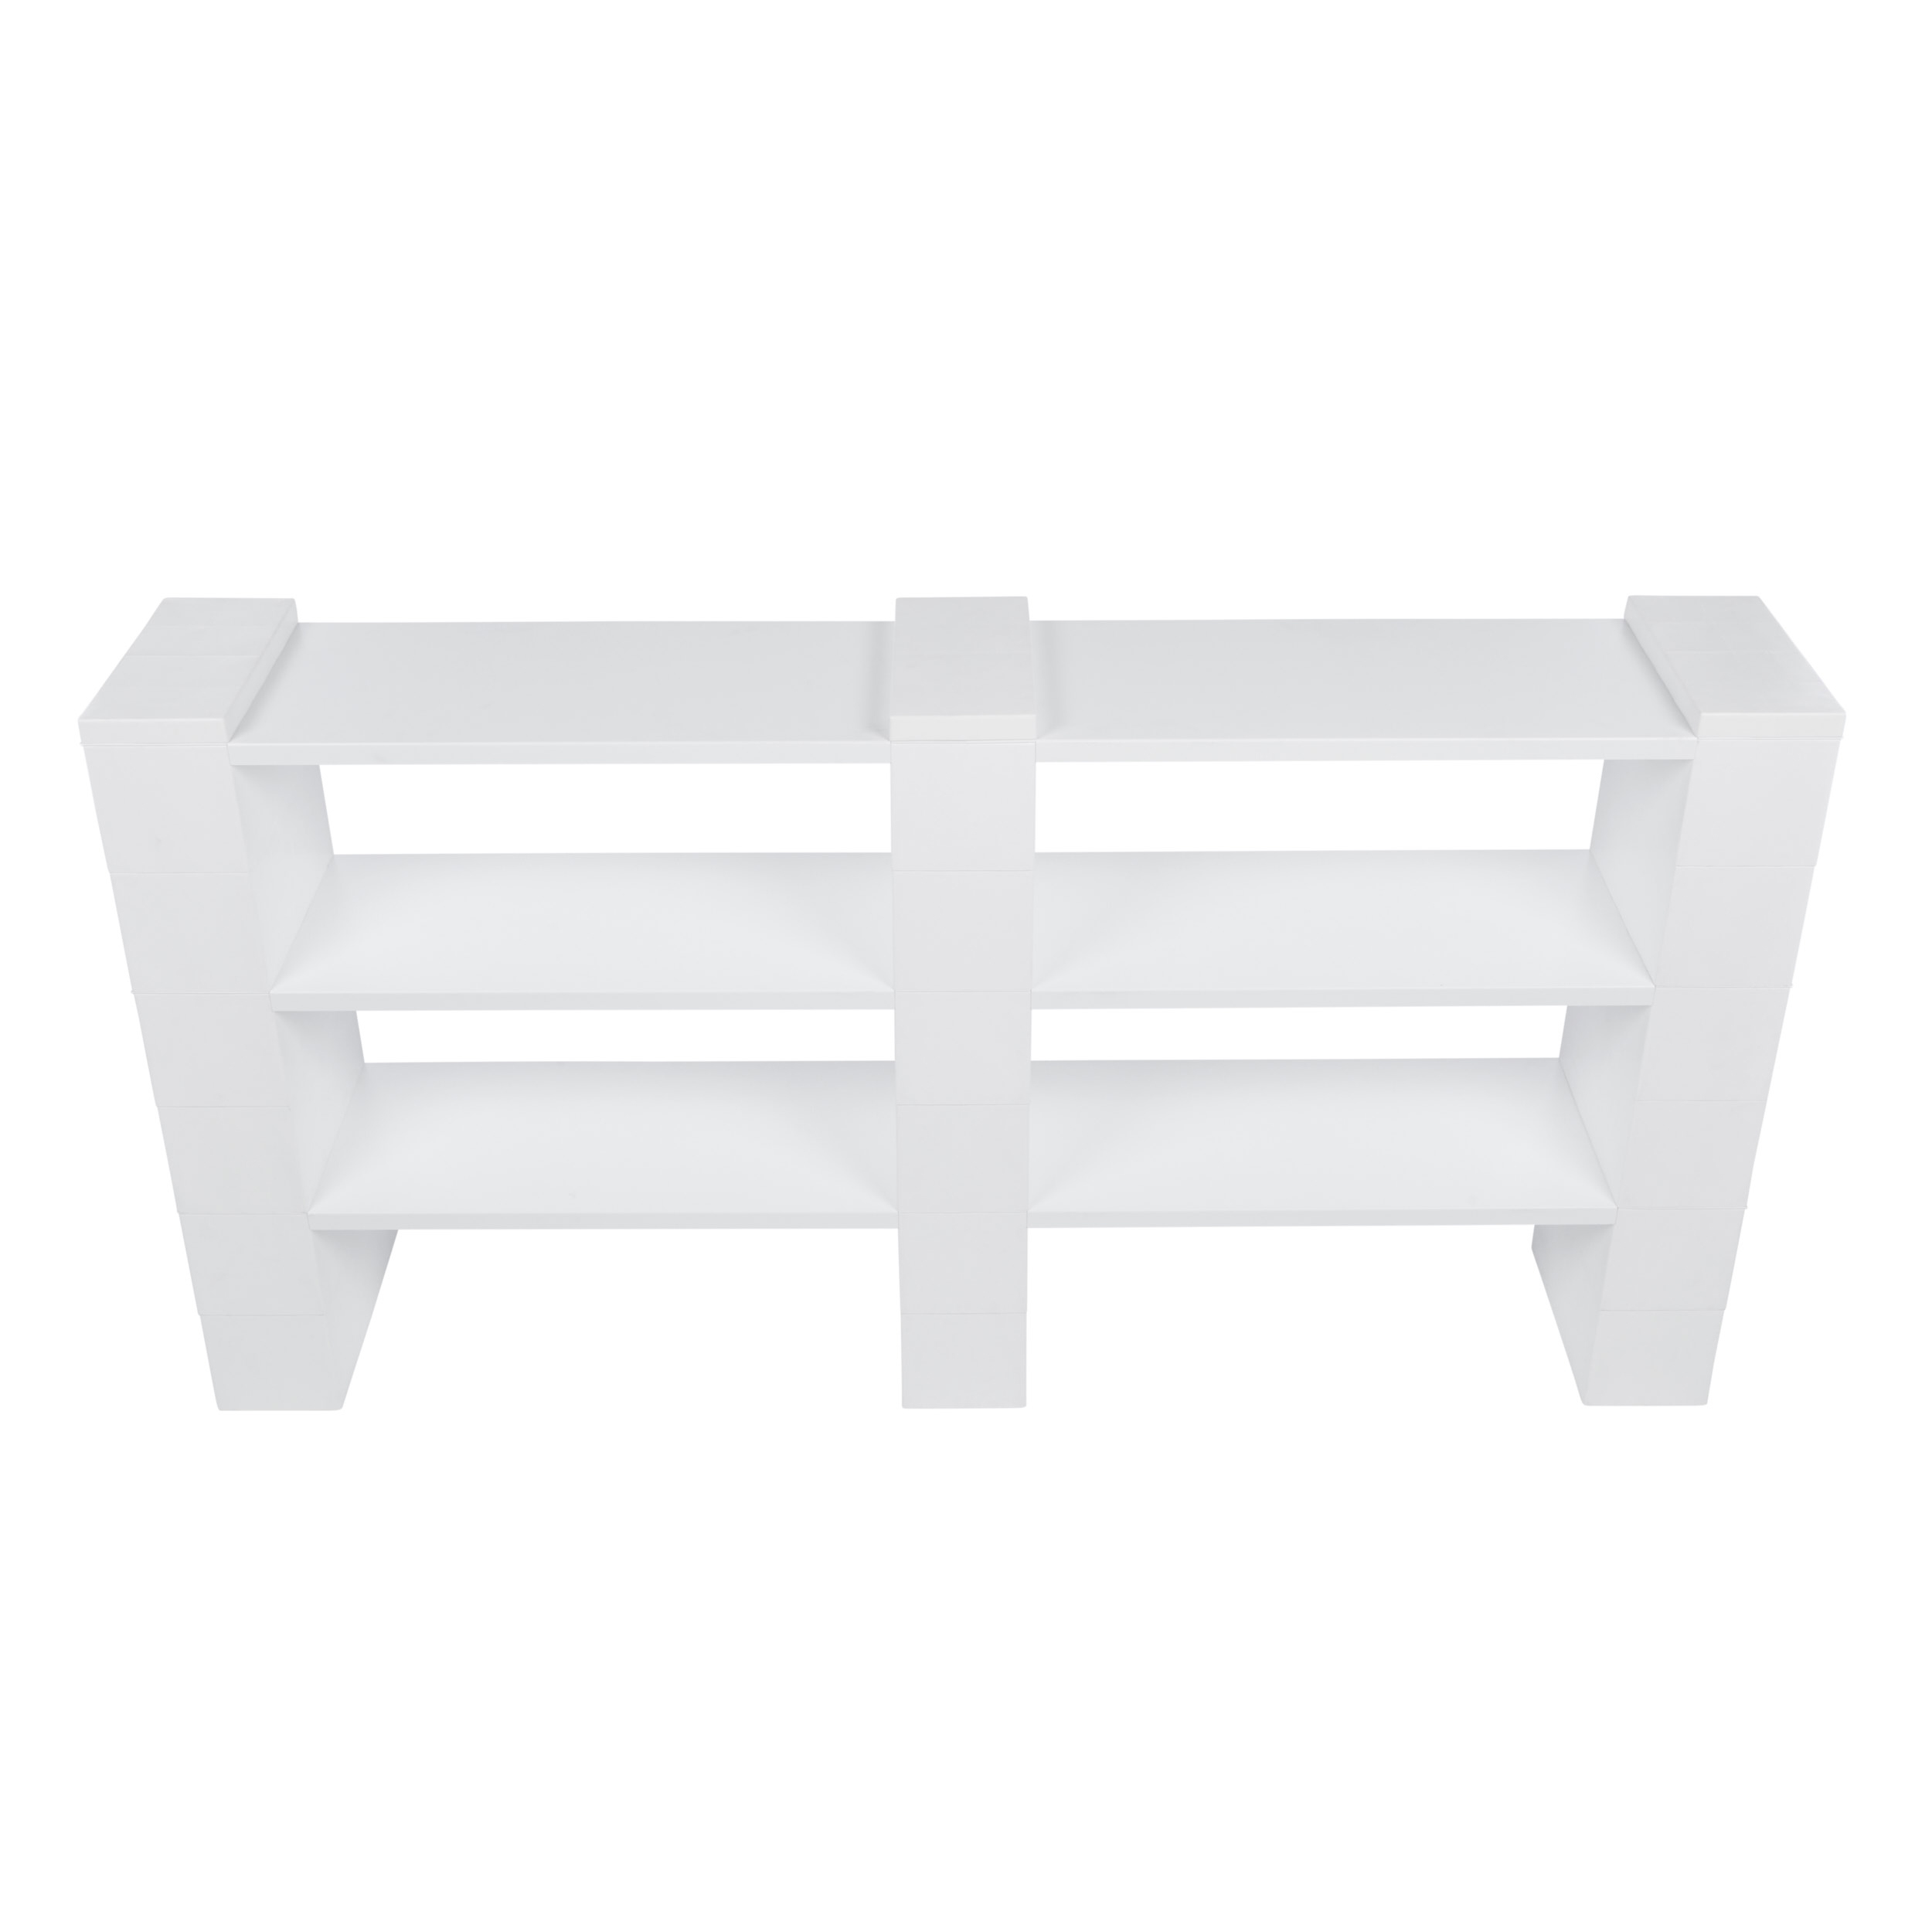 "3 Level, Double Shelf, 72""W EverBlock Shelving Kit"